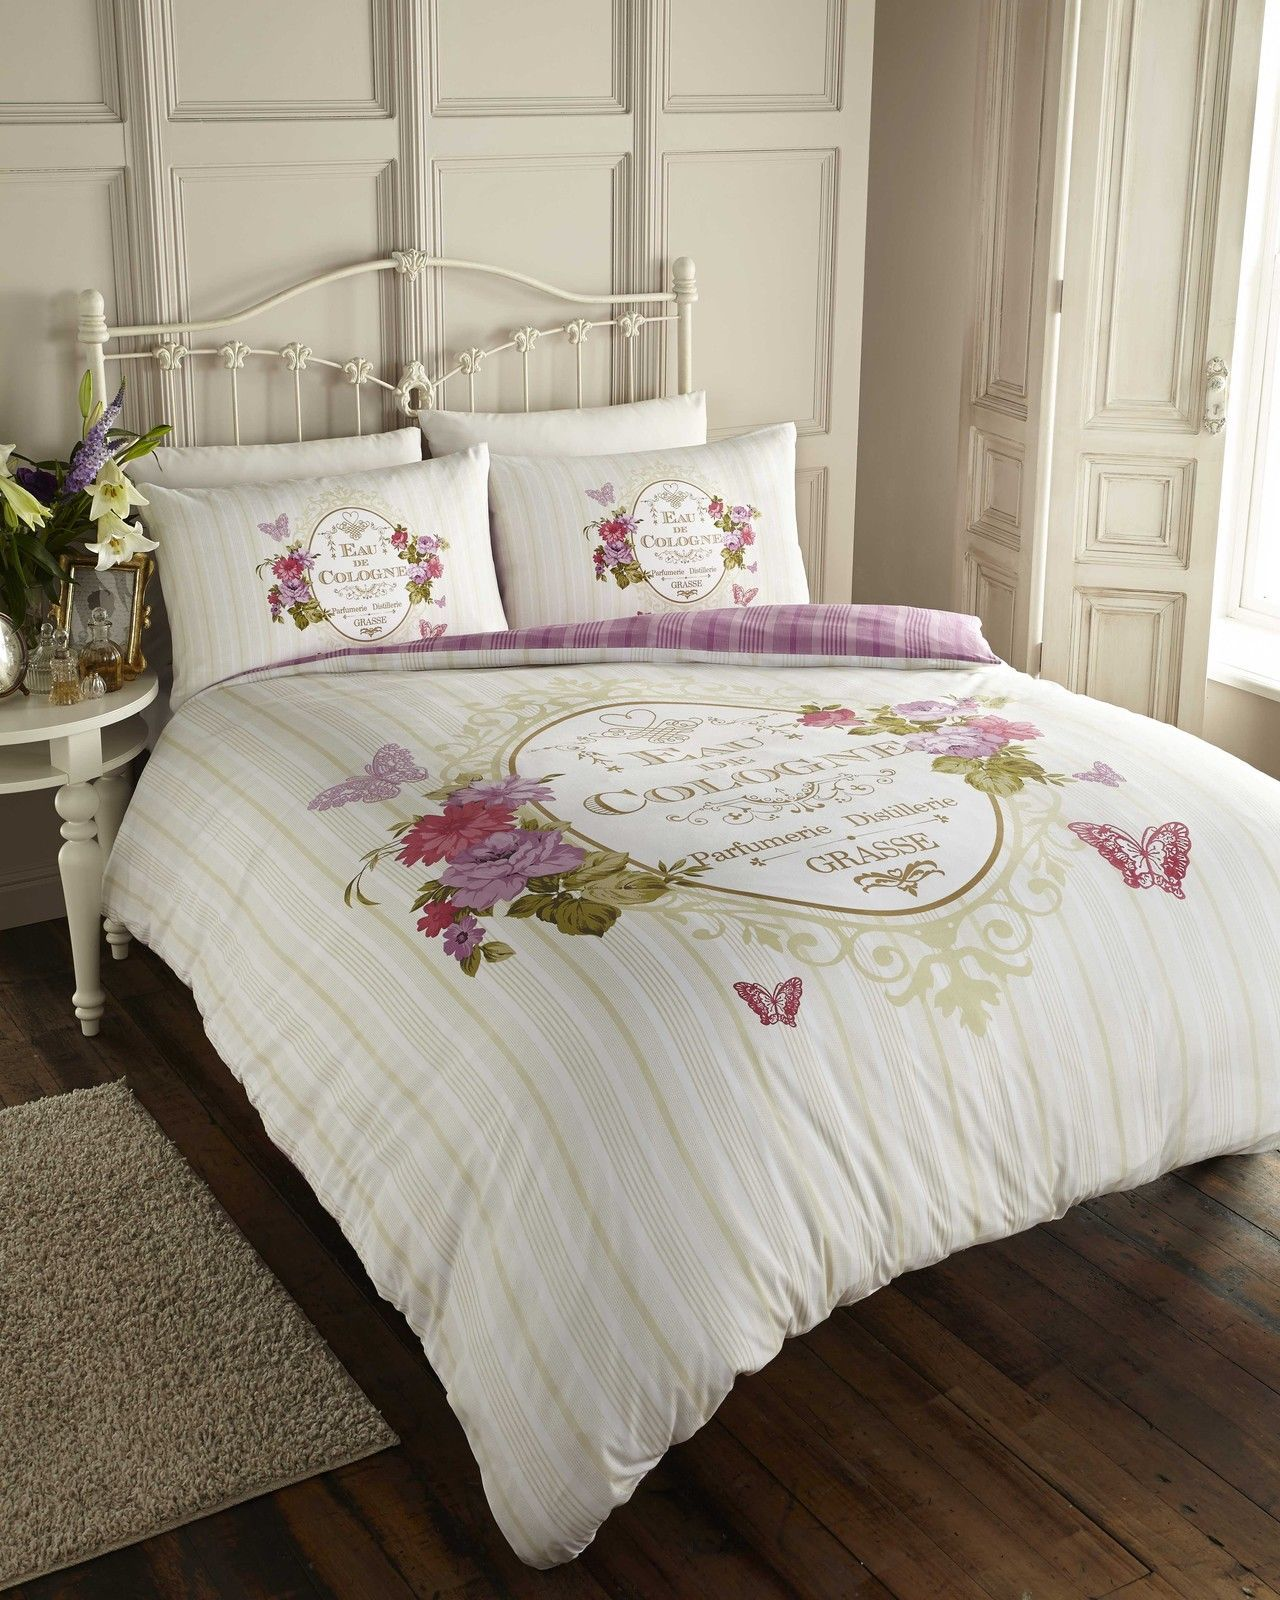 SCRIPT BUTTERFLY PARIS CHIC QUILT DUVET COVER BEDDING SET SINGLE DOUBLE KING